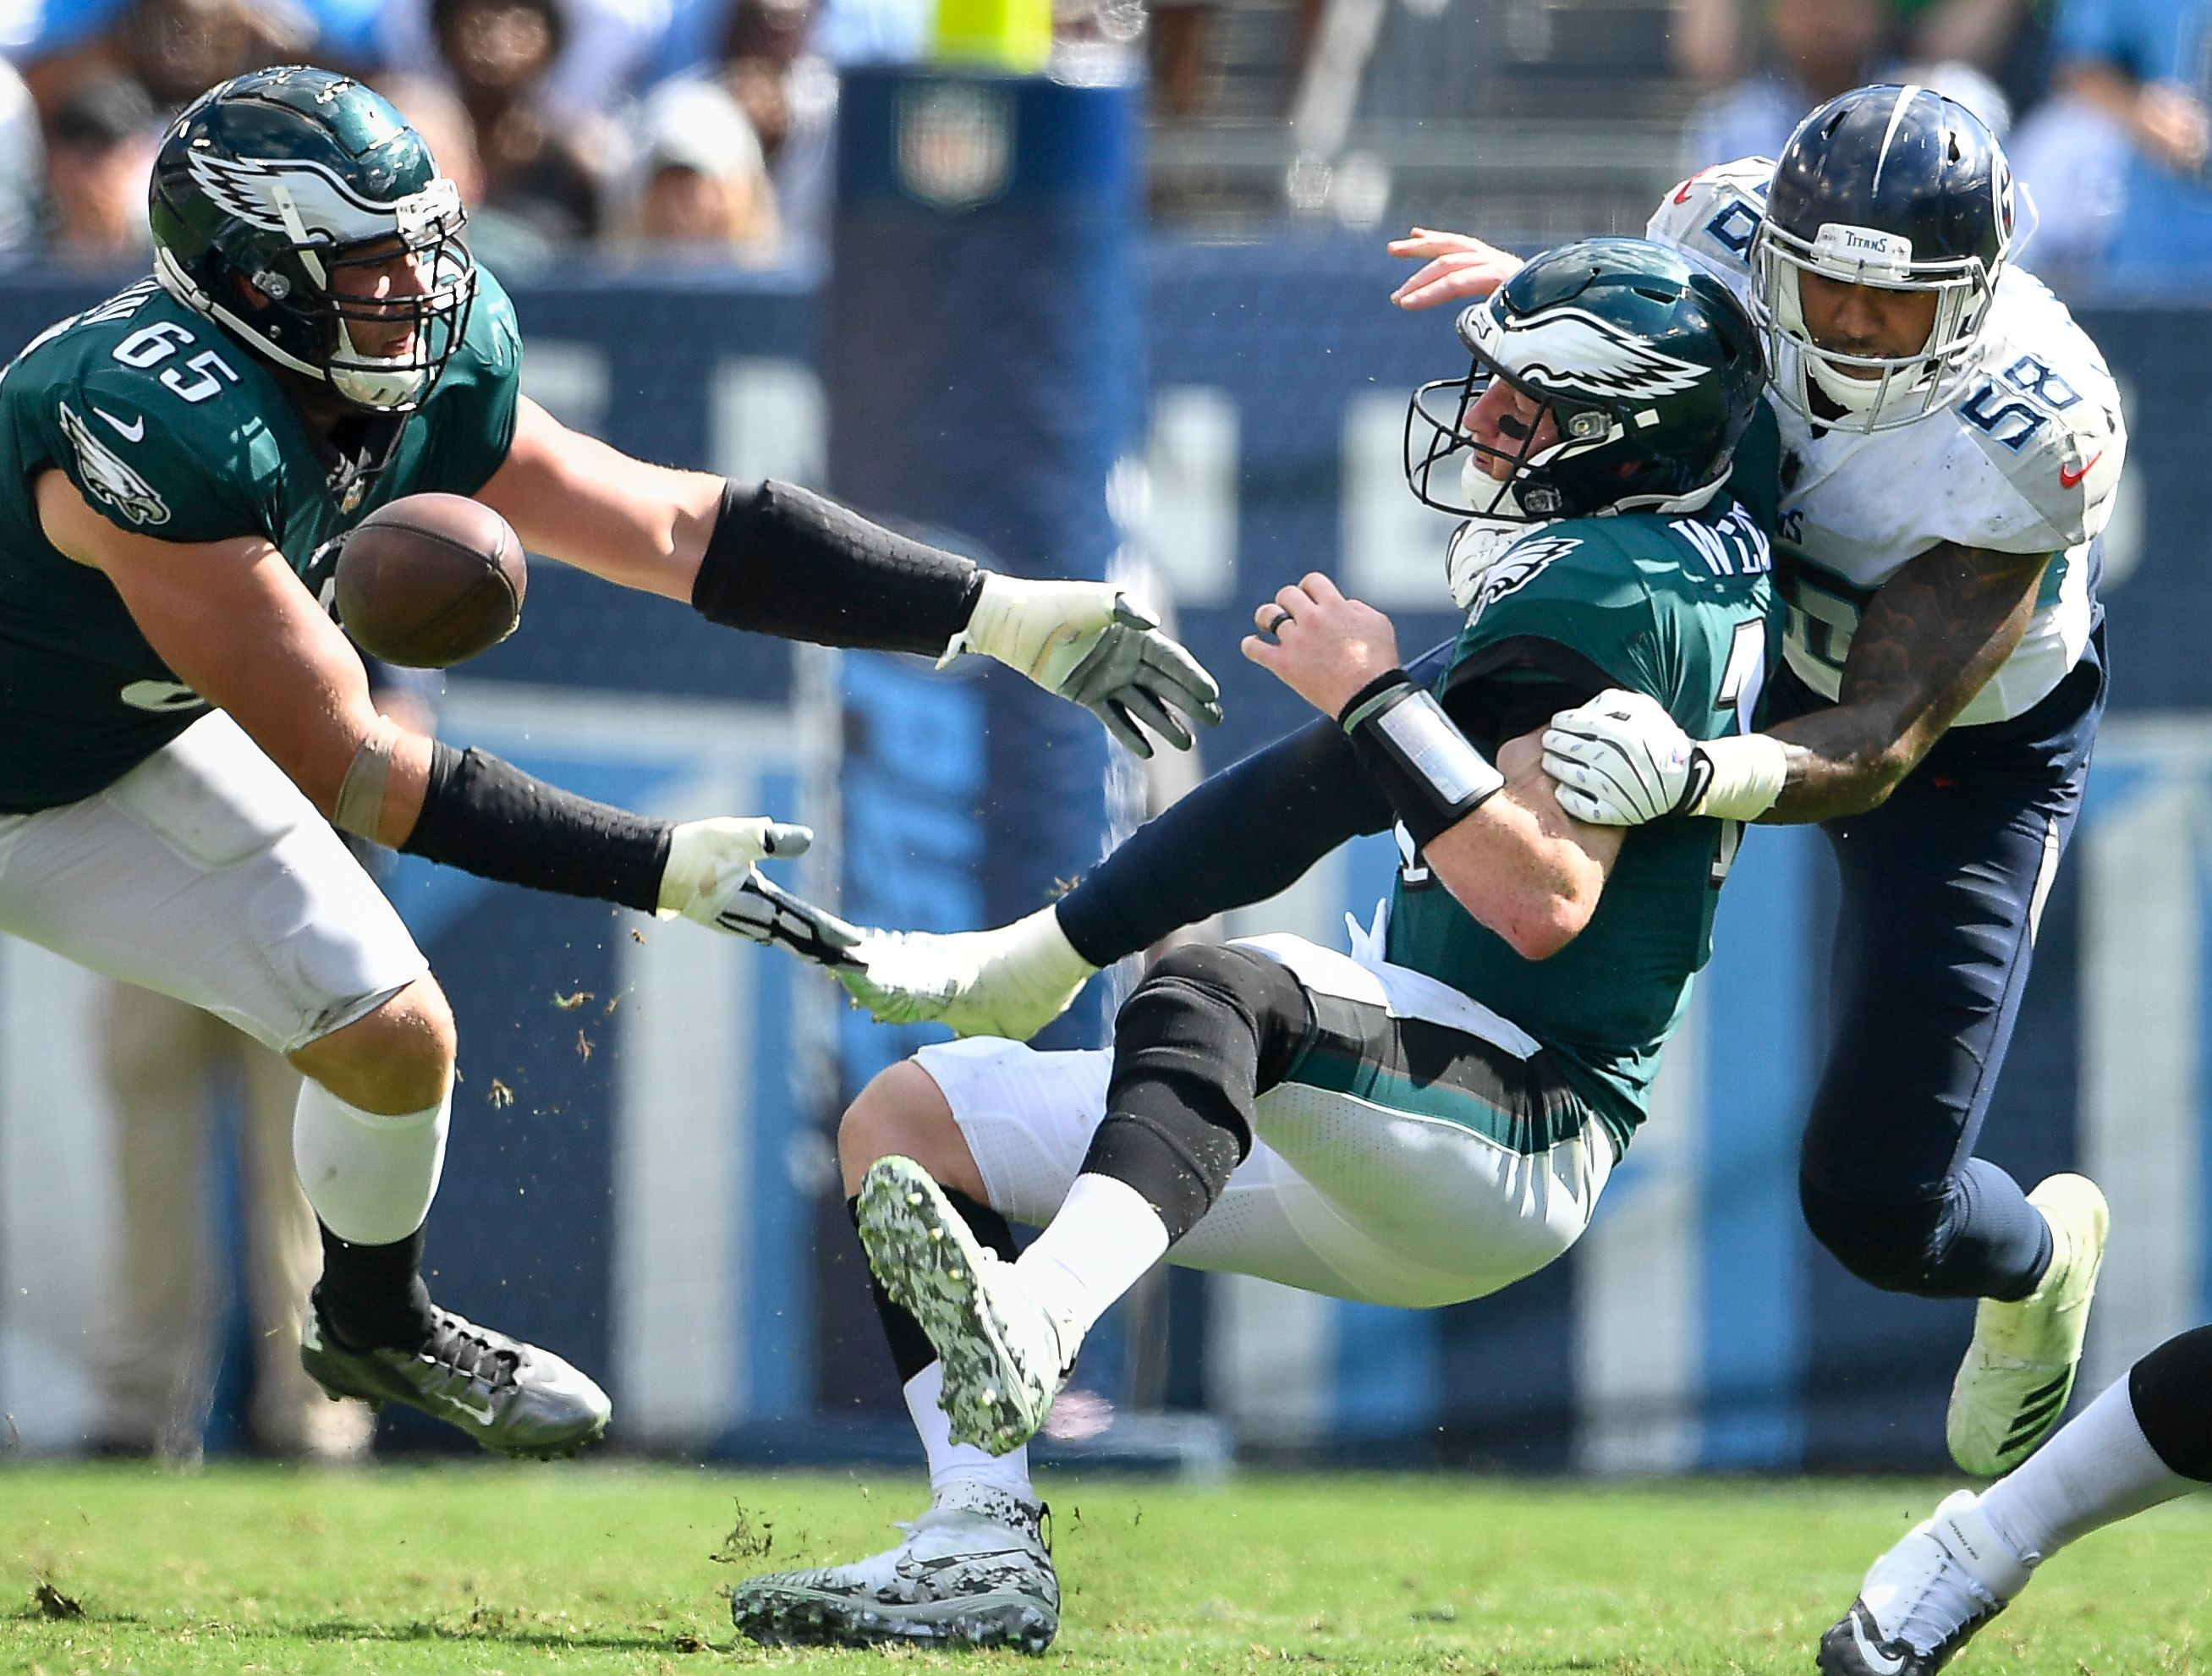 Titans linebacker Harold Landry (58) forces Eagles quarterback Carson Wentz (11) to fumble as he is sacked during the fourth quarter of last season's game.